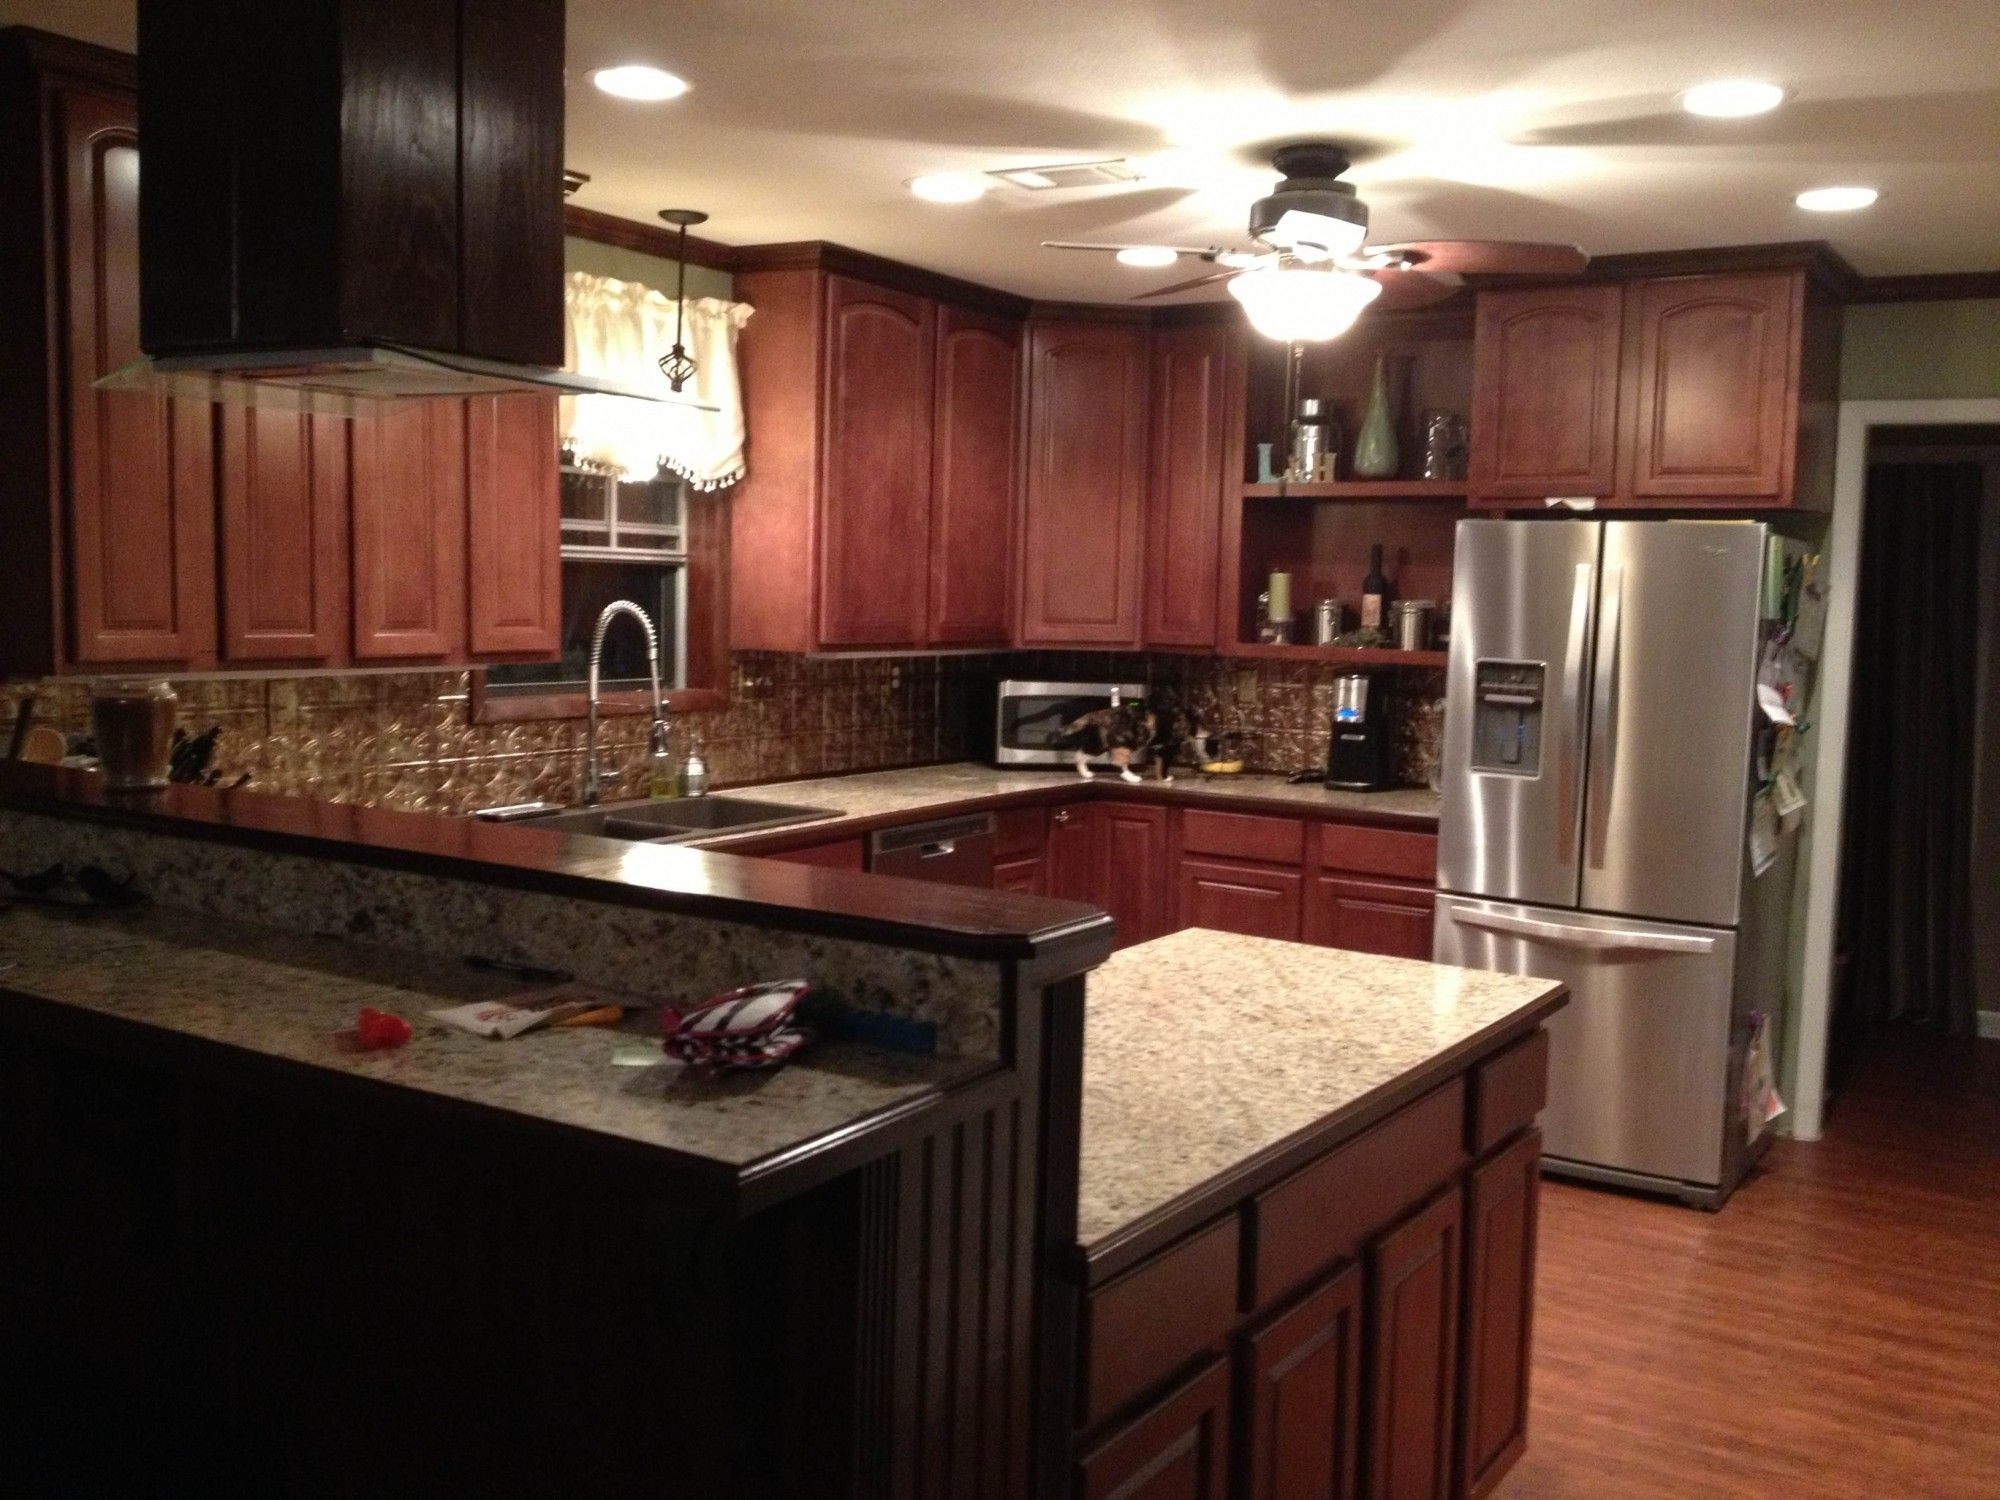 Best 20 Kitchen Cabinet Design Ideas To Reshape Your Space Entrancing Design Of Kitchen Cabinets Design Ideas